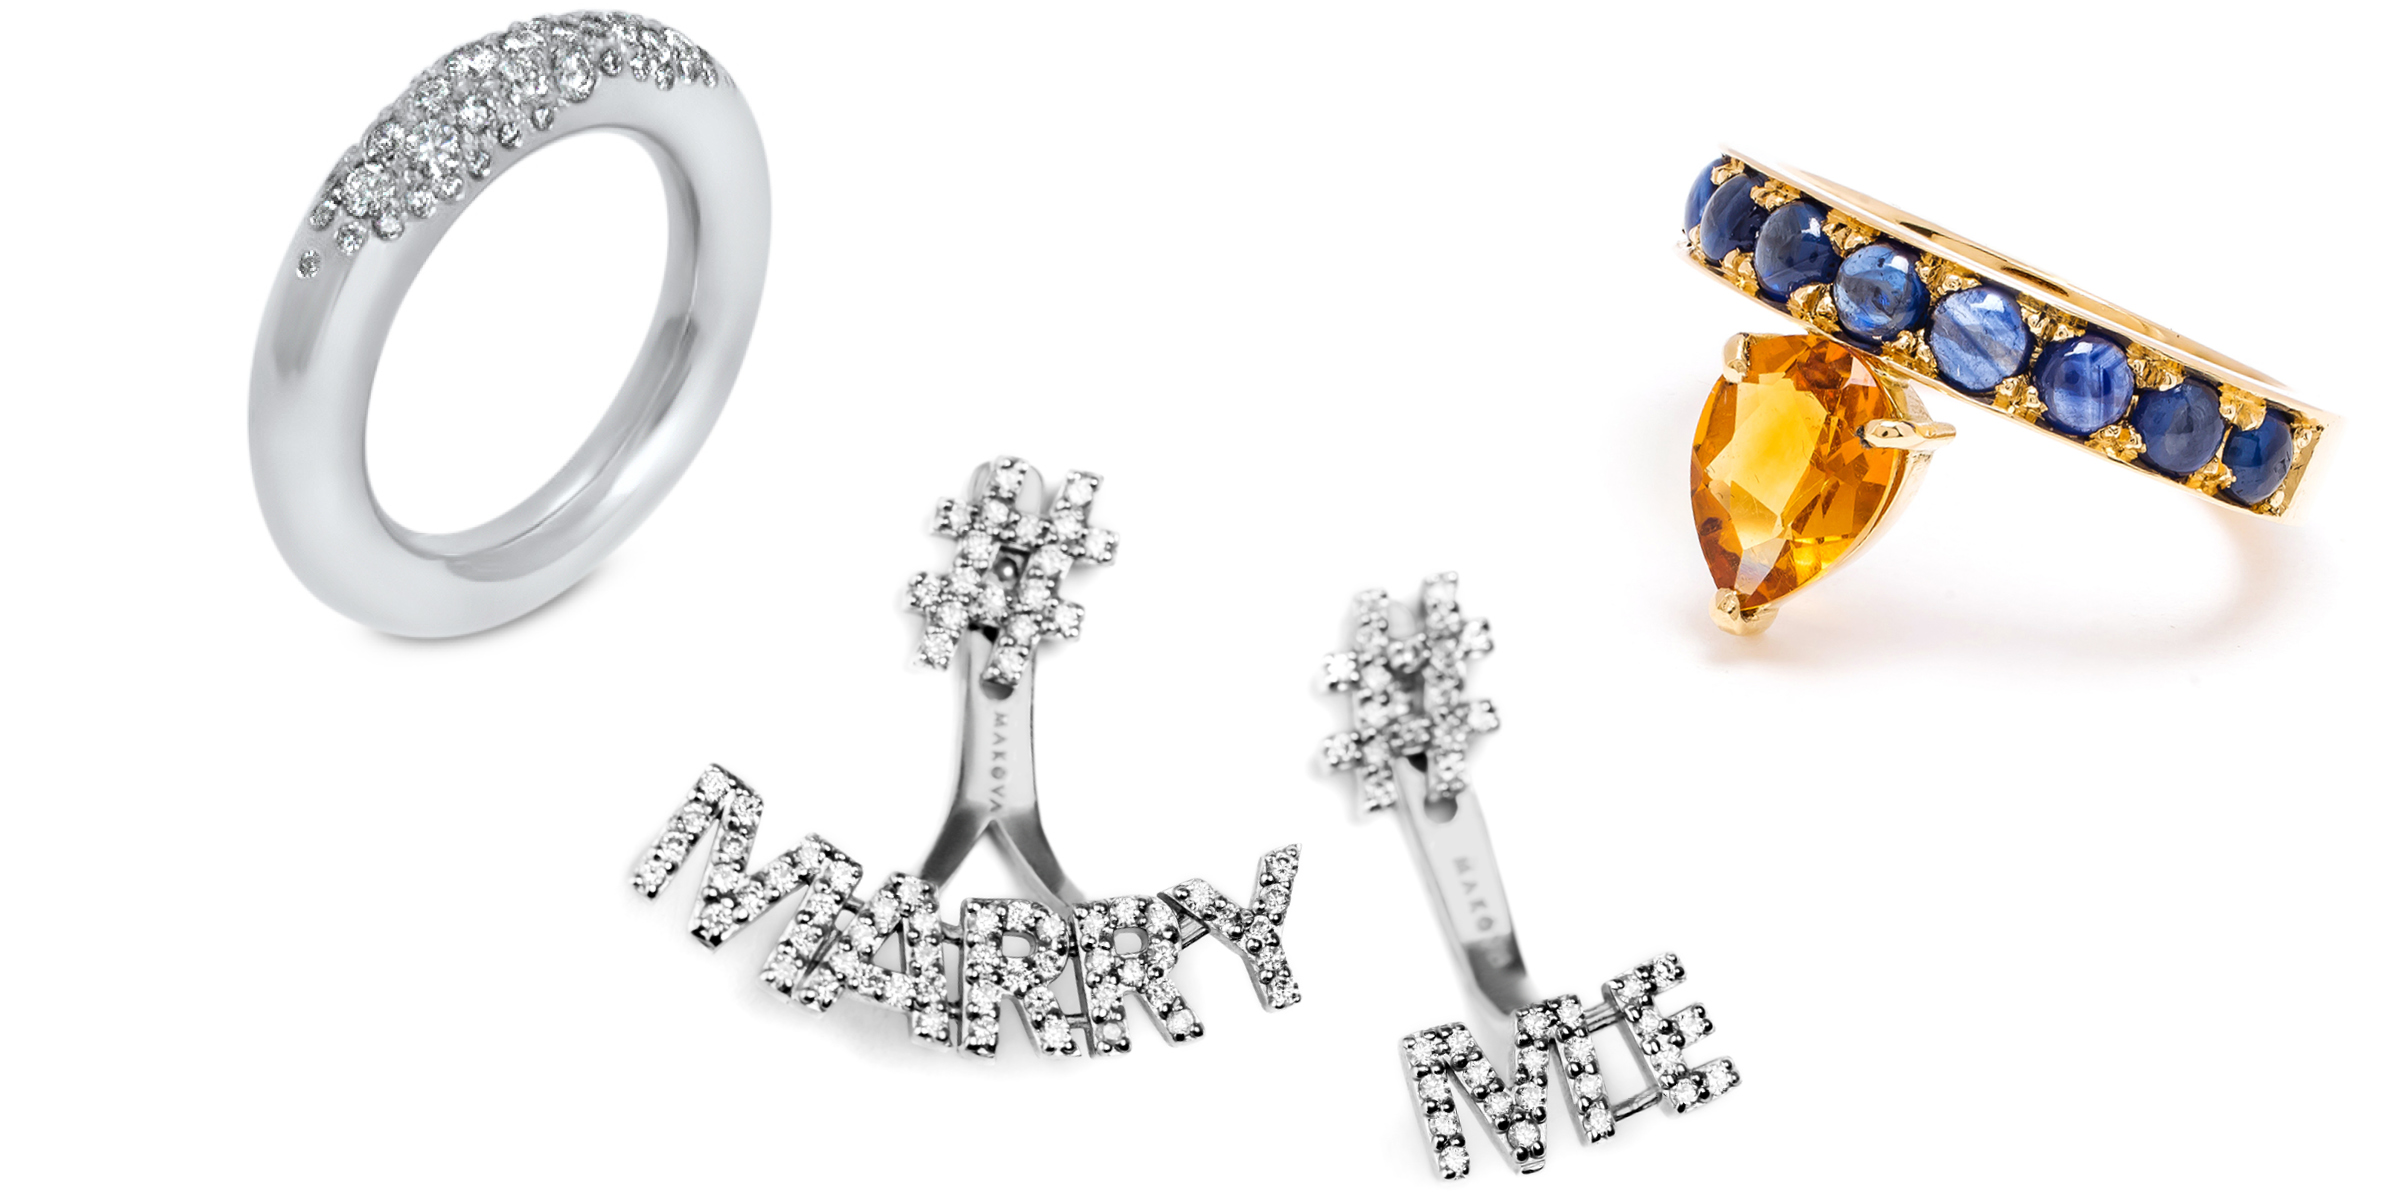 Meet the Engagements - A curation of alternative engagement rings that are uniquely beautiful